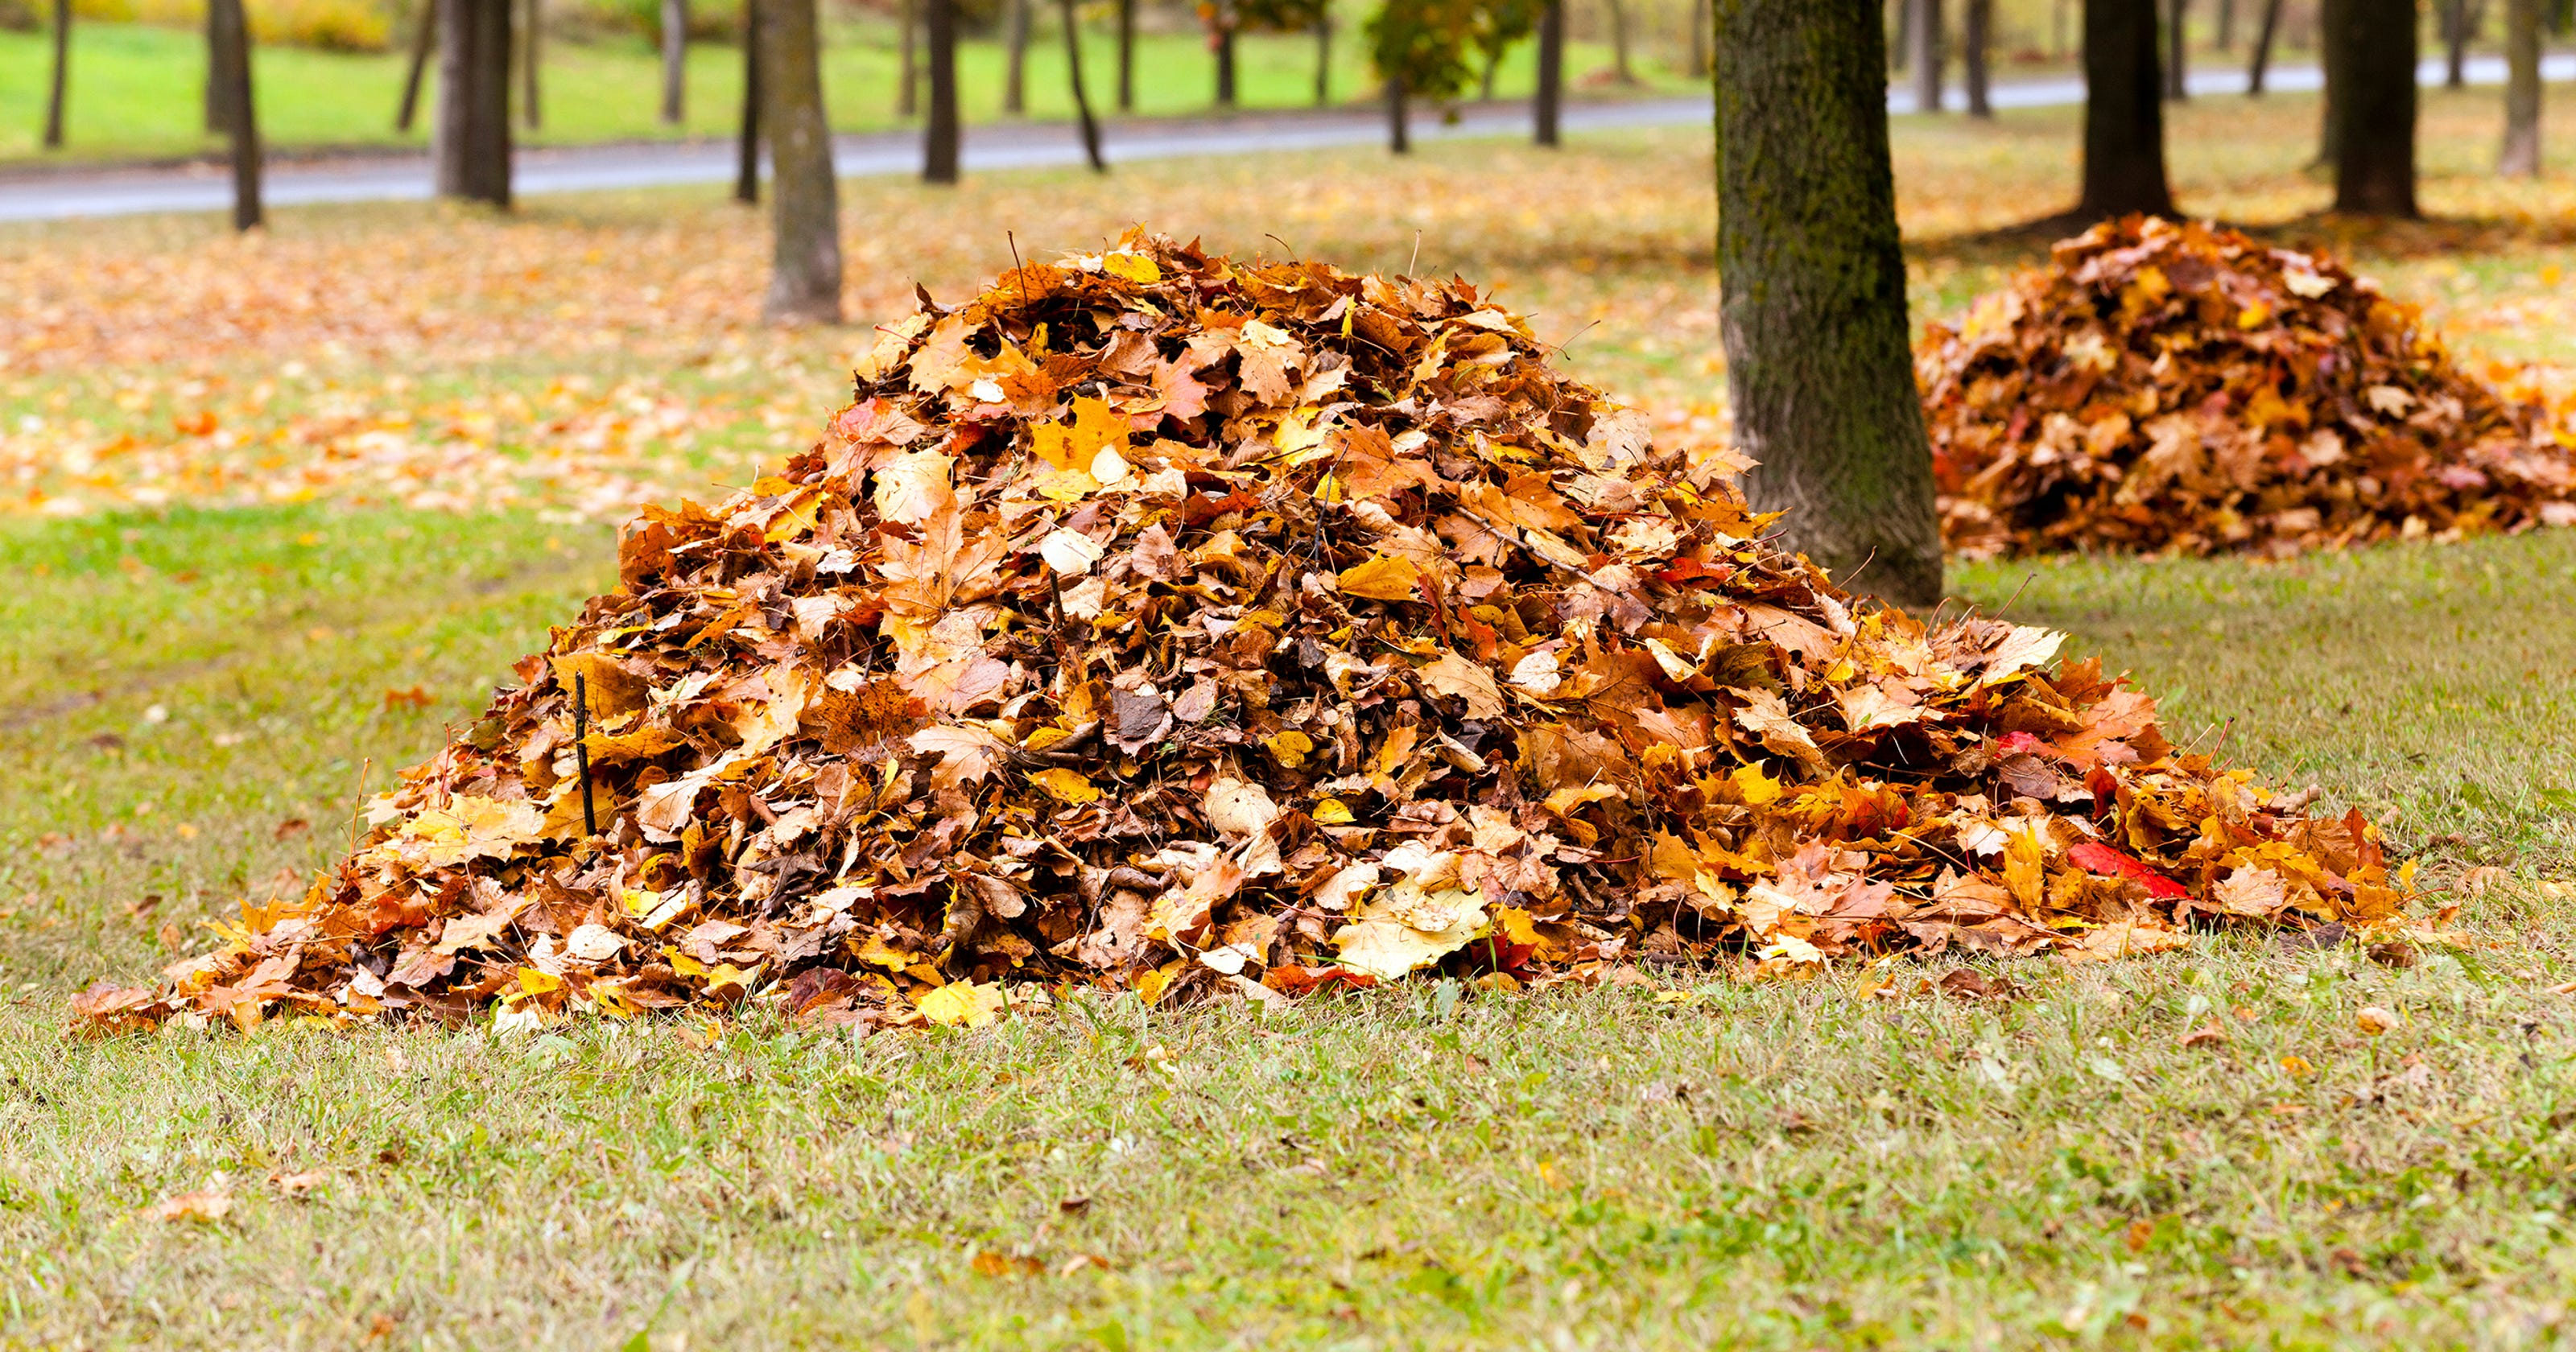 Here's why you should avoid raking your leaves